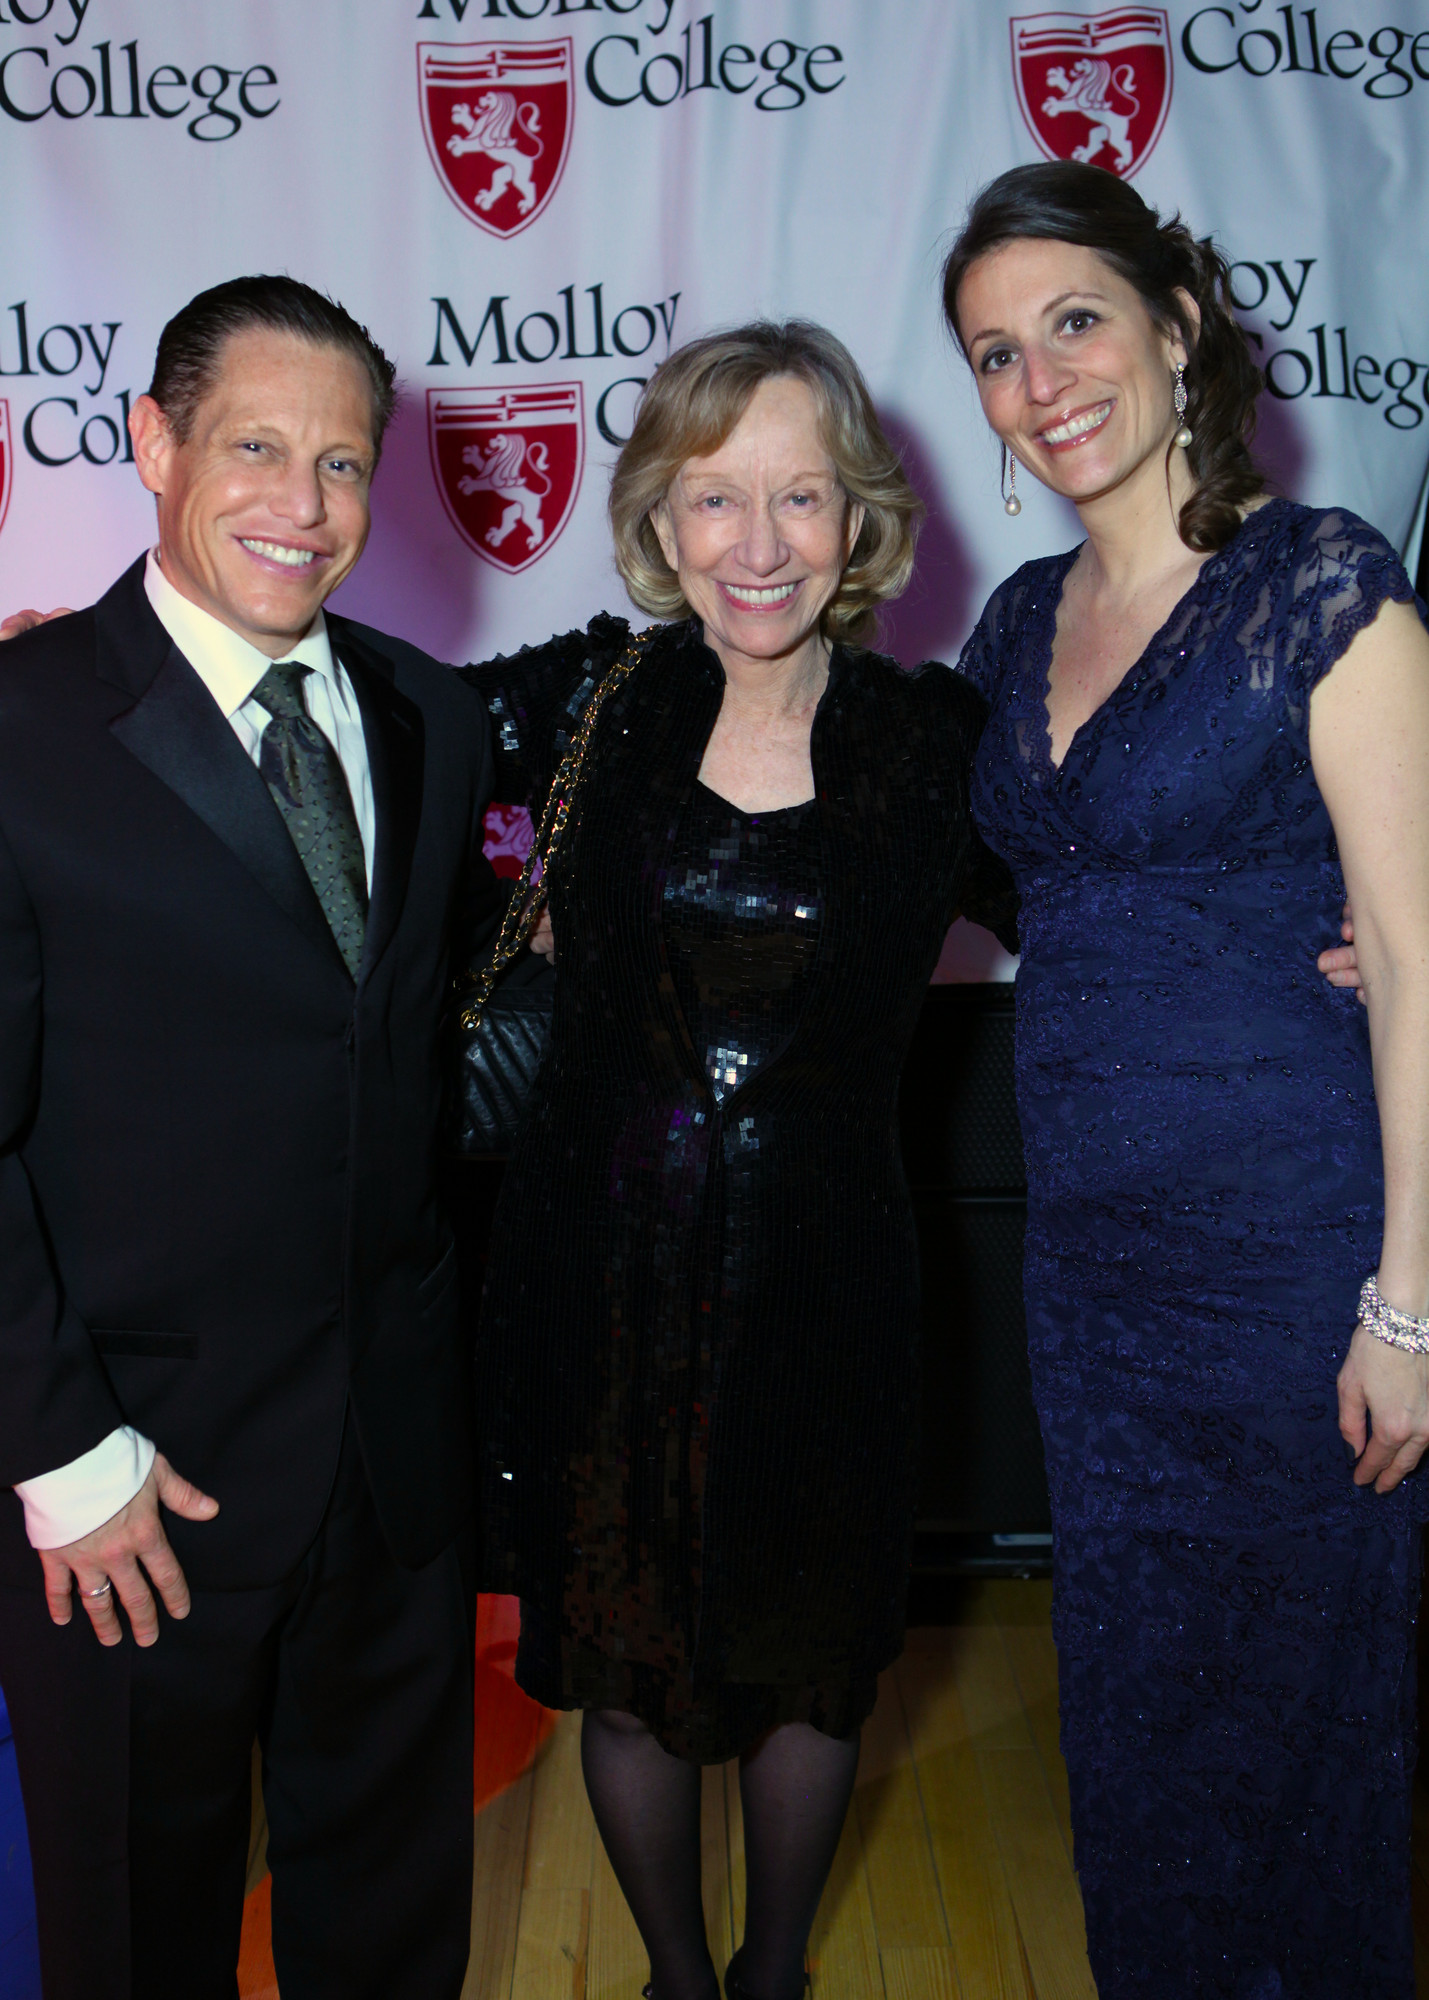 Doris Kearns Goodwin, center, with Gala Co-chairs Tina Rekus and Darren Raymar.